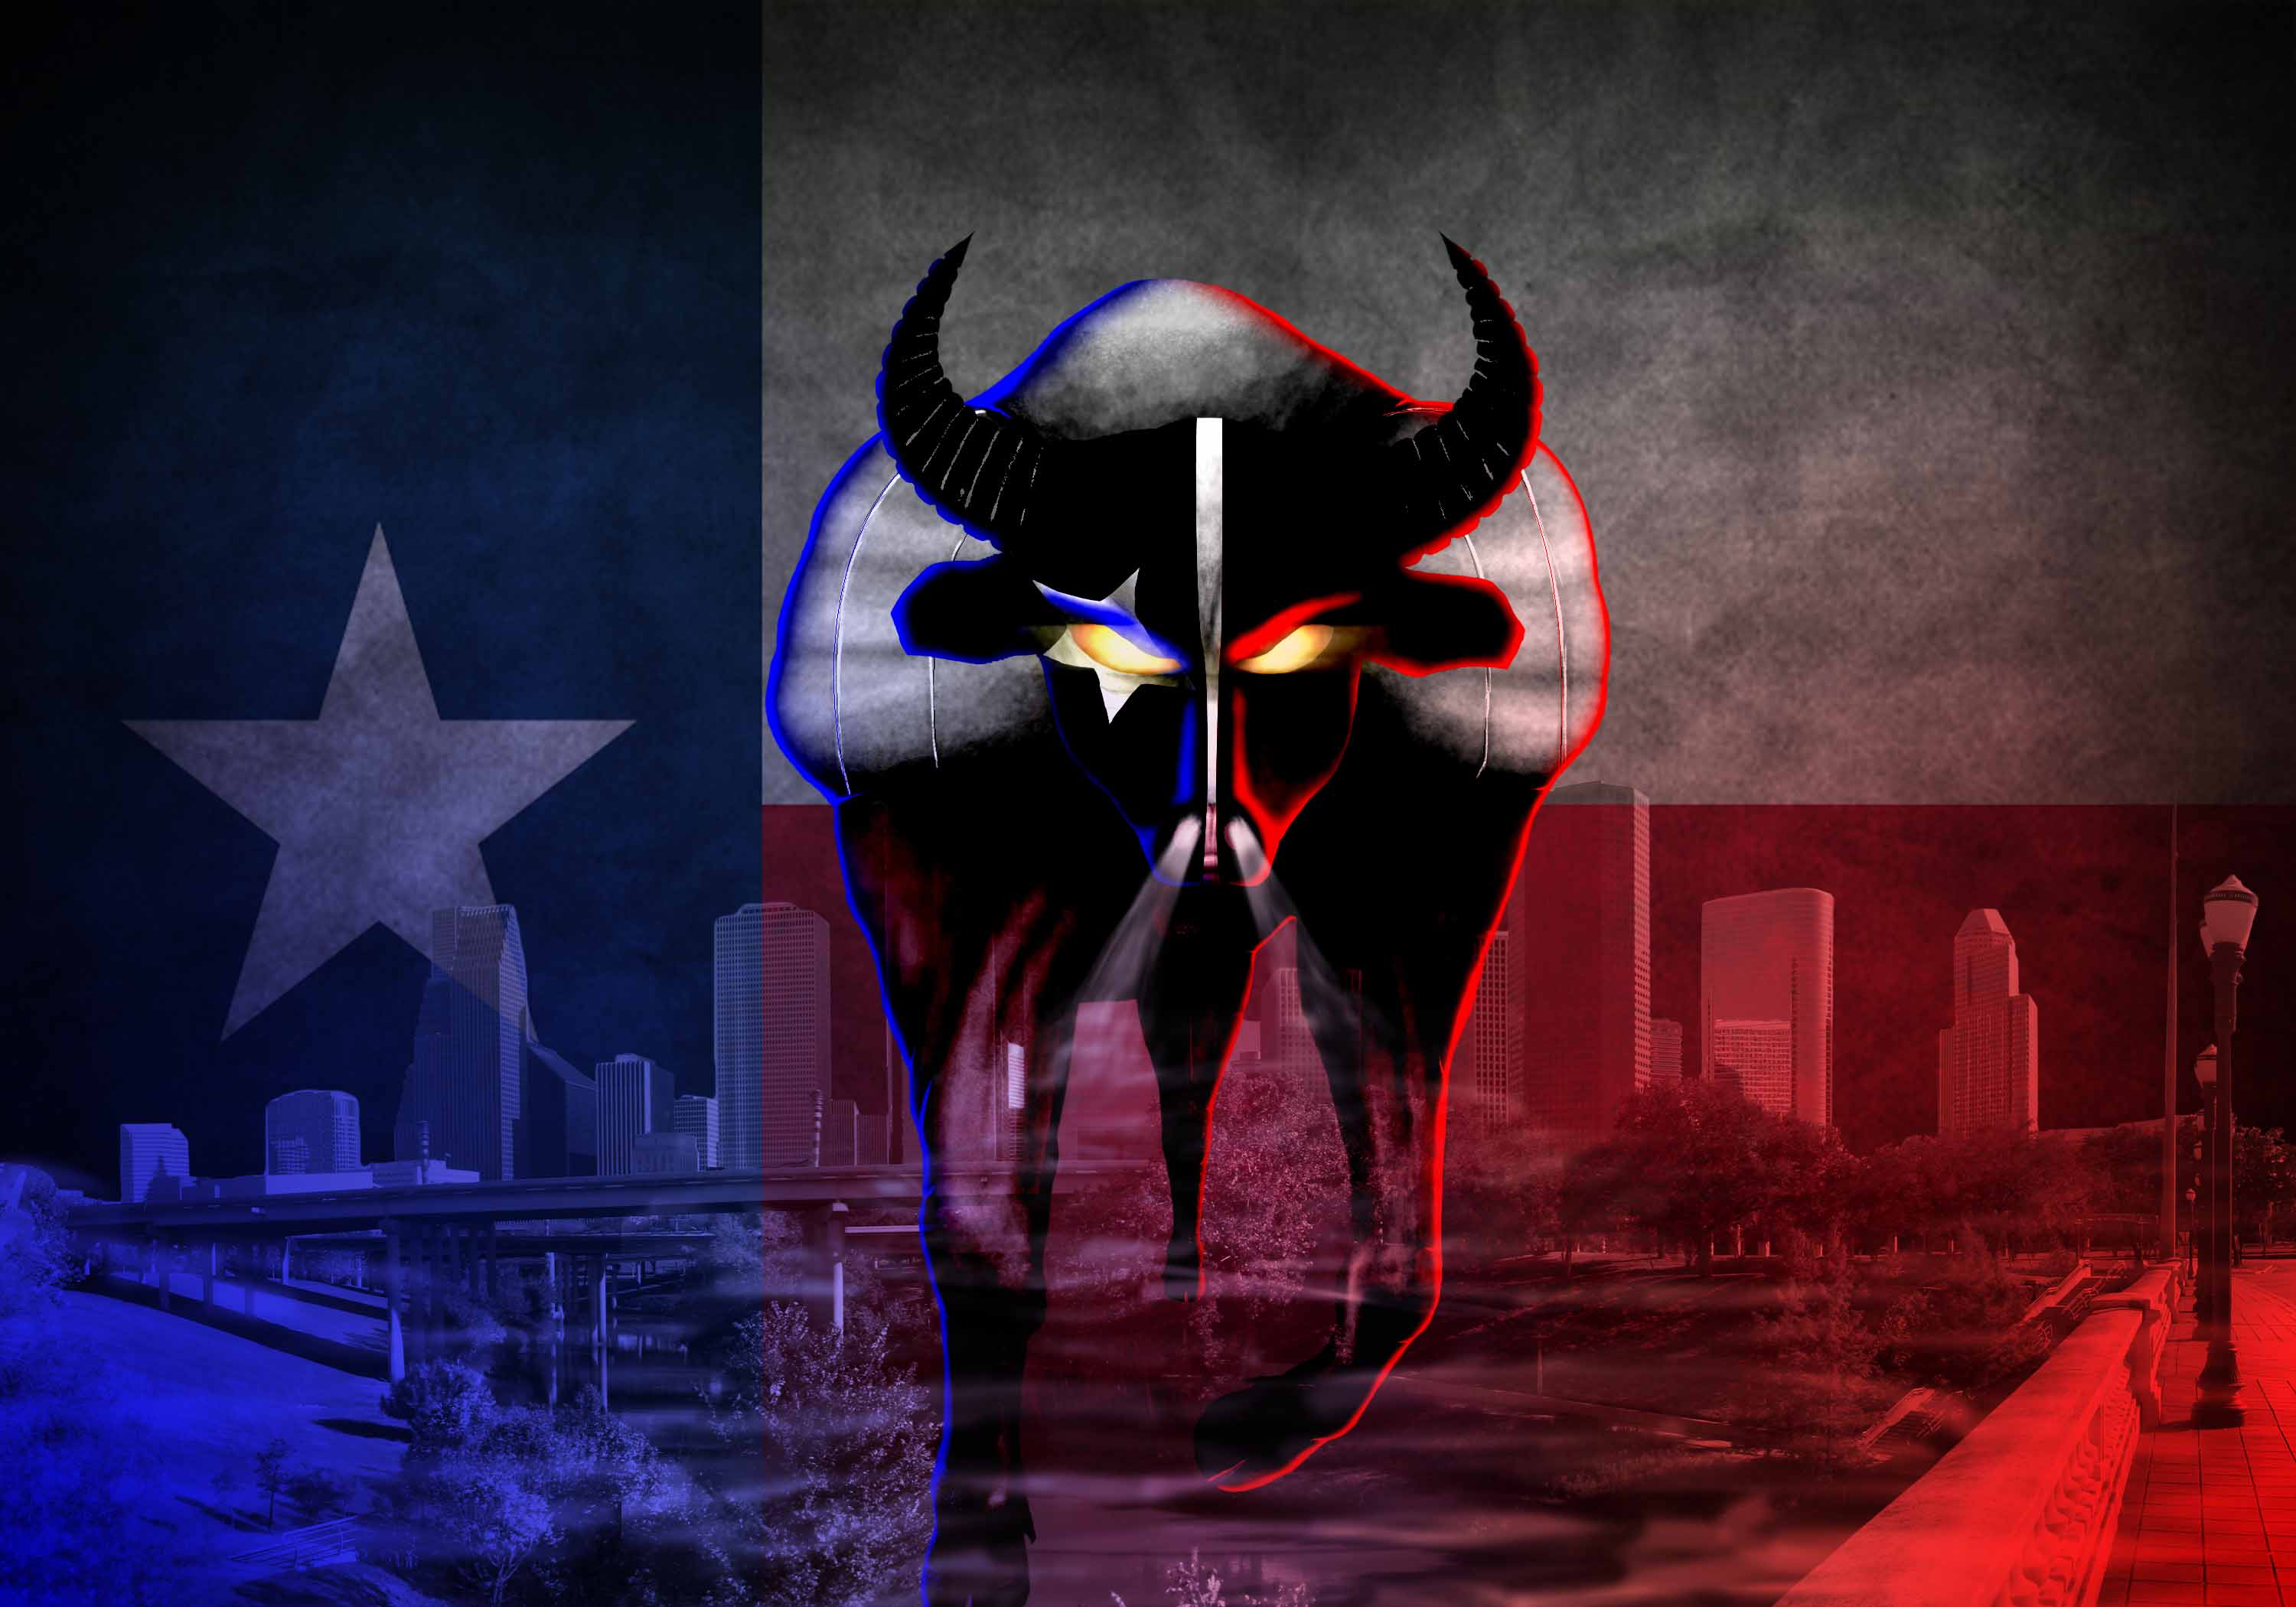 HOUSTON TEXANS nfl football demon dark wallpaper 3000x2100 156276 3000x2100